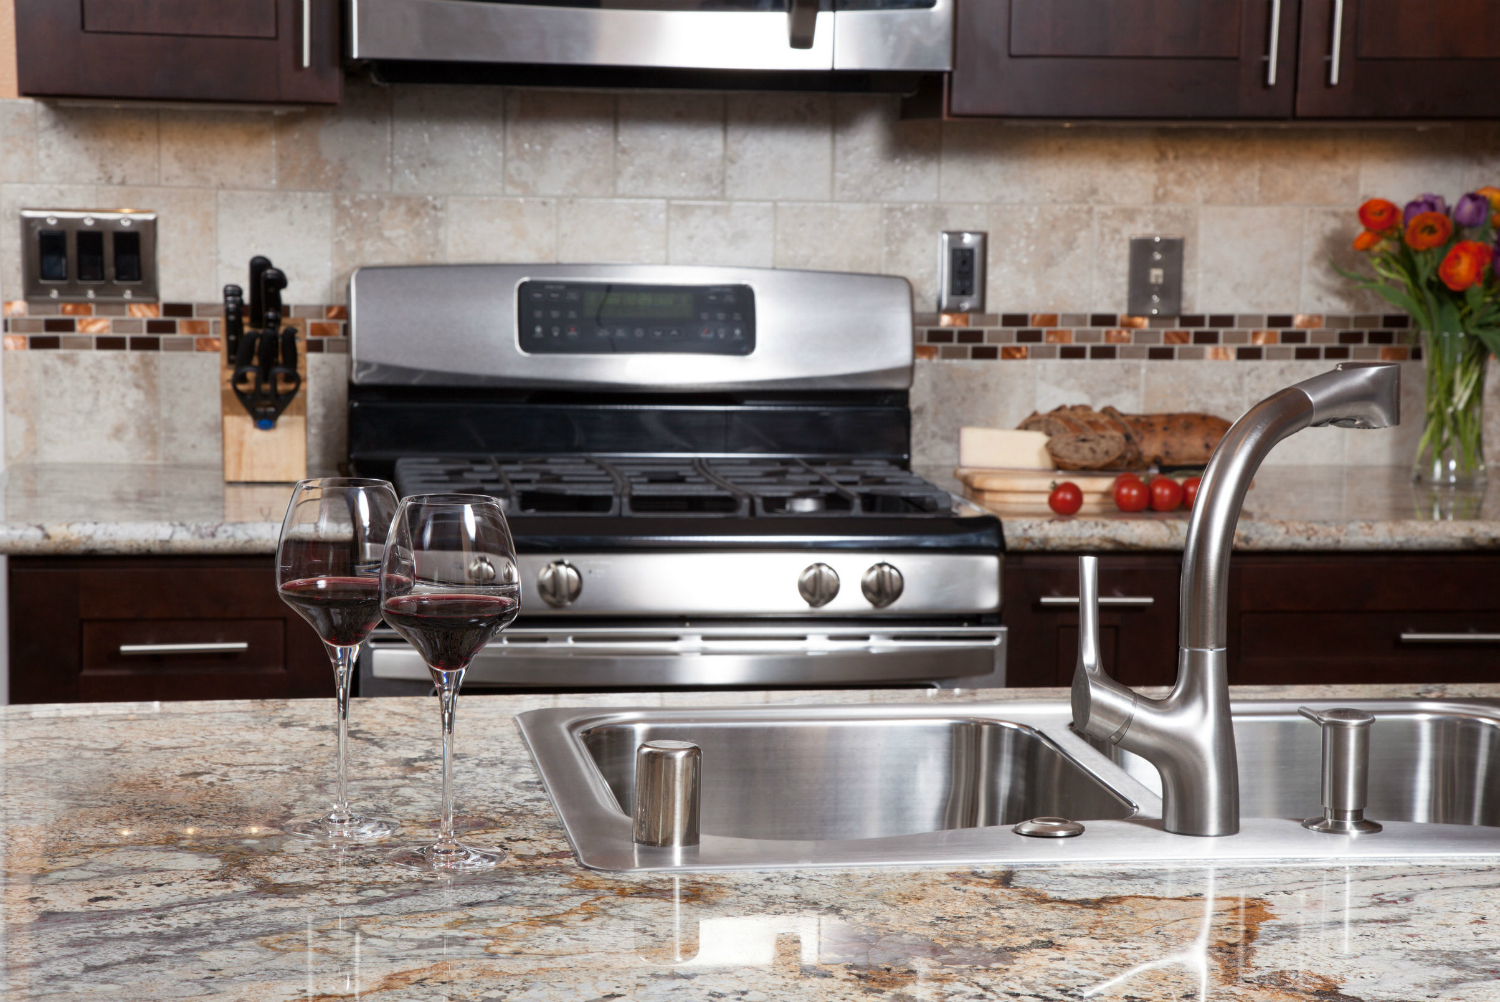 Heres How To Clean Granite Countertops The Right Way Digital Trends - Granite countertops in kitchens